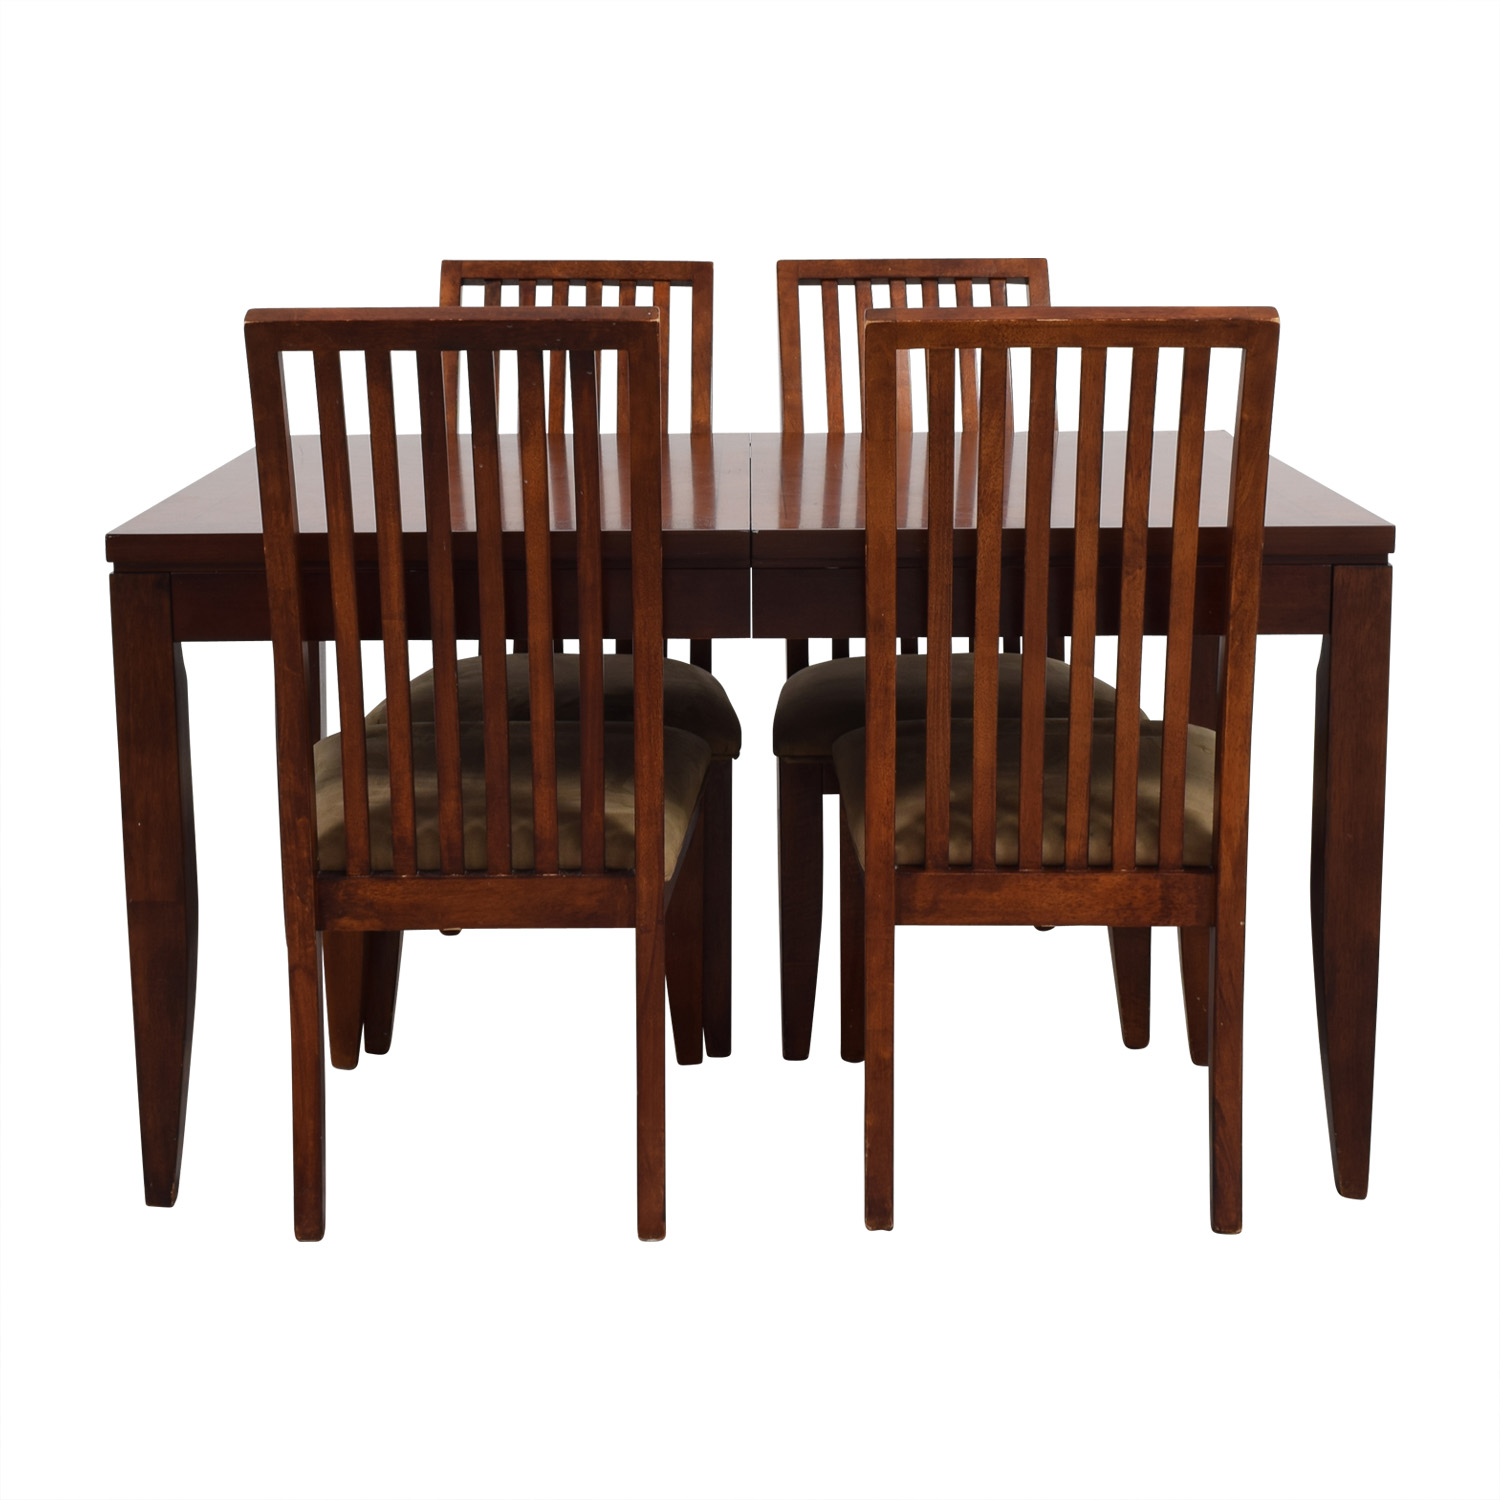 macys dining chairs chair bed sleeper sets used for sale